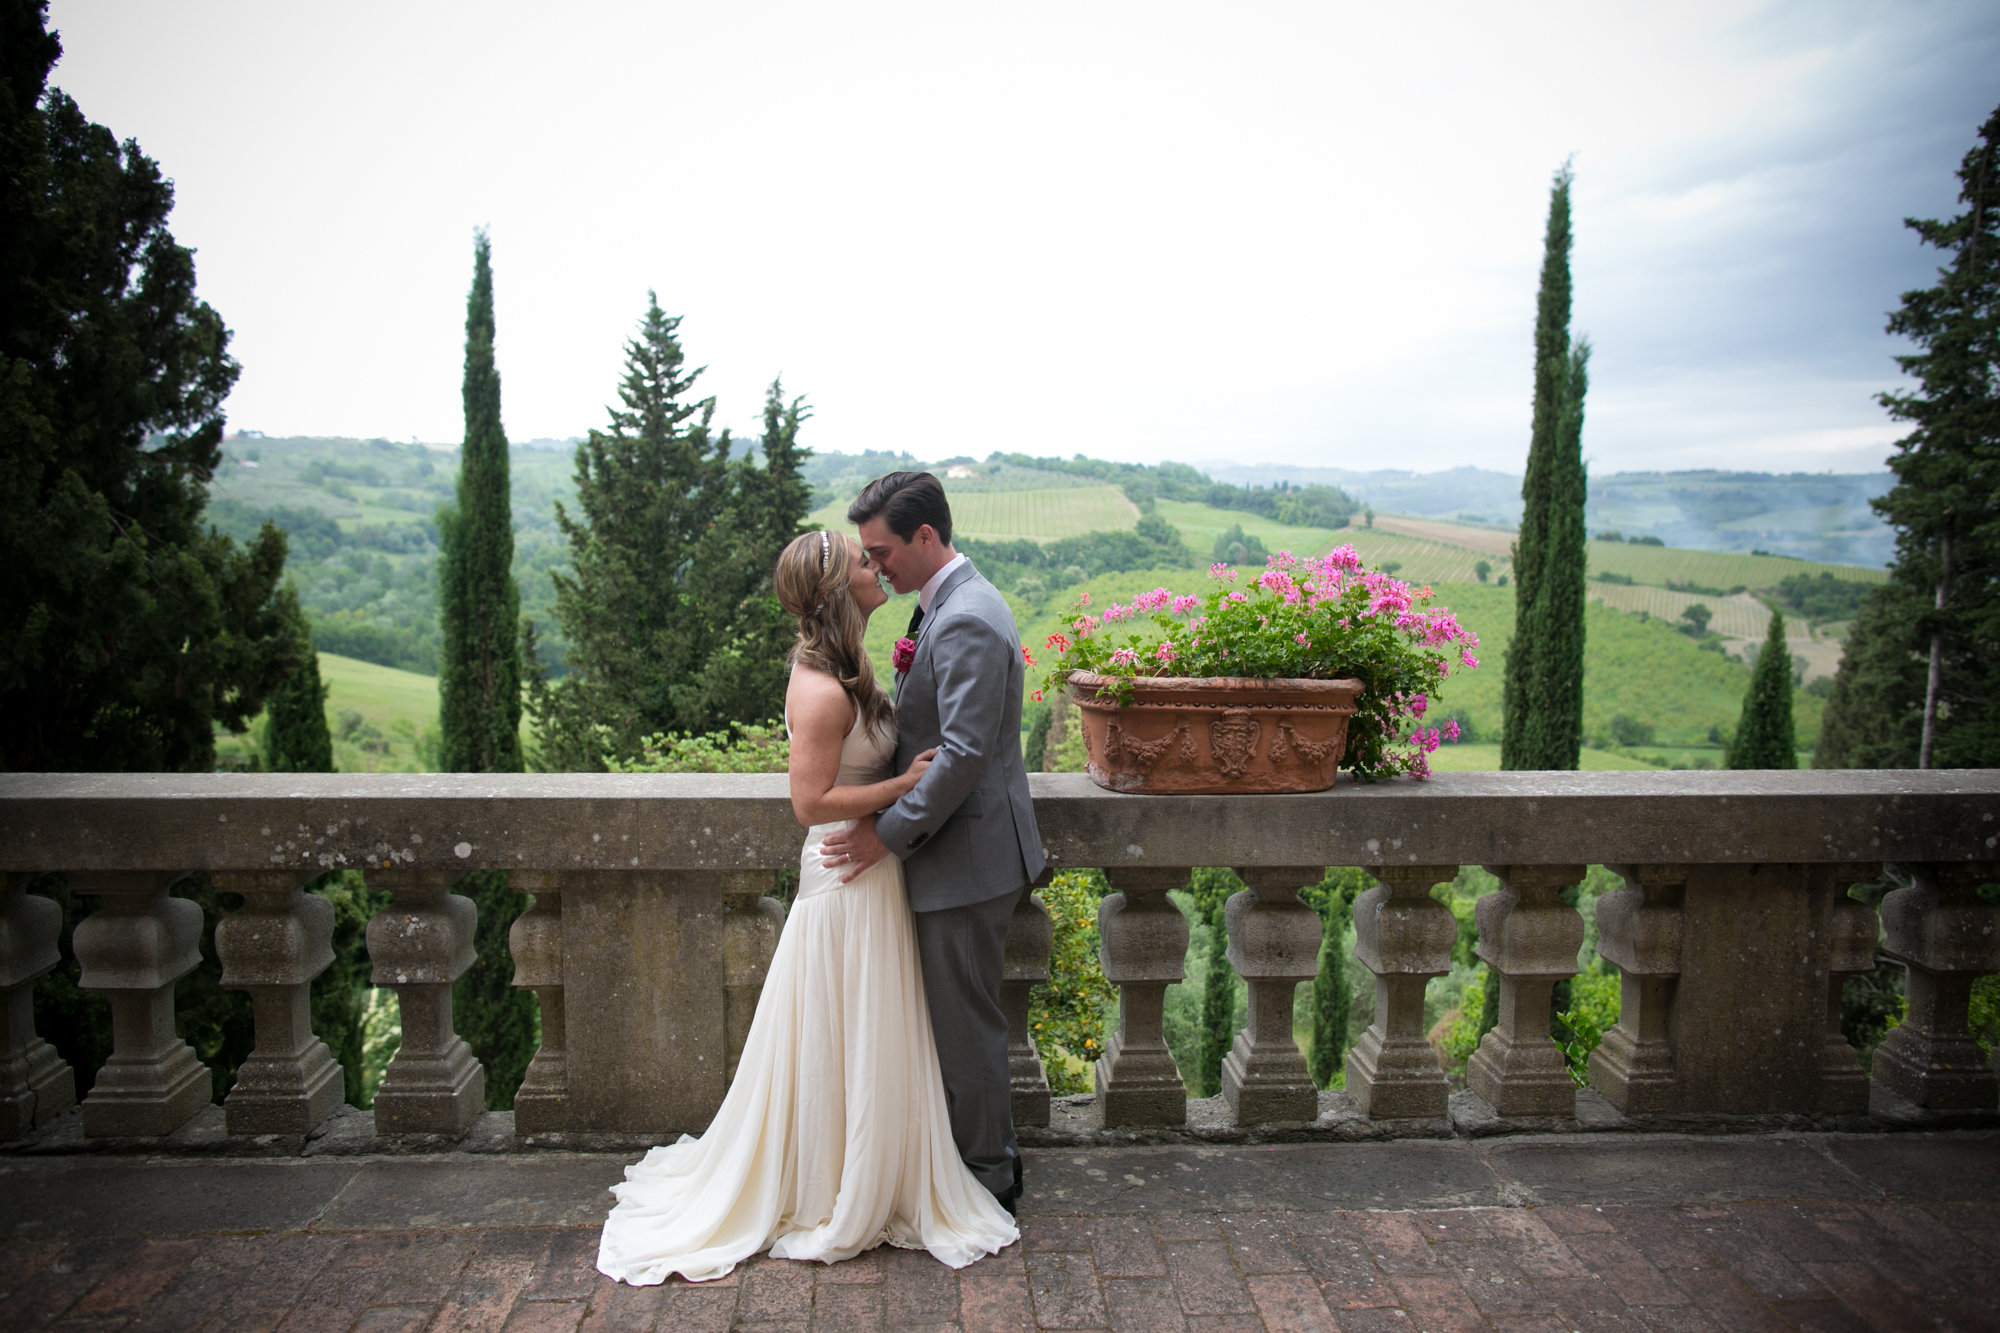 Civil weddings plan your civil wedding in the gorgeous tuscany civil weddings junglespirit Image collections